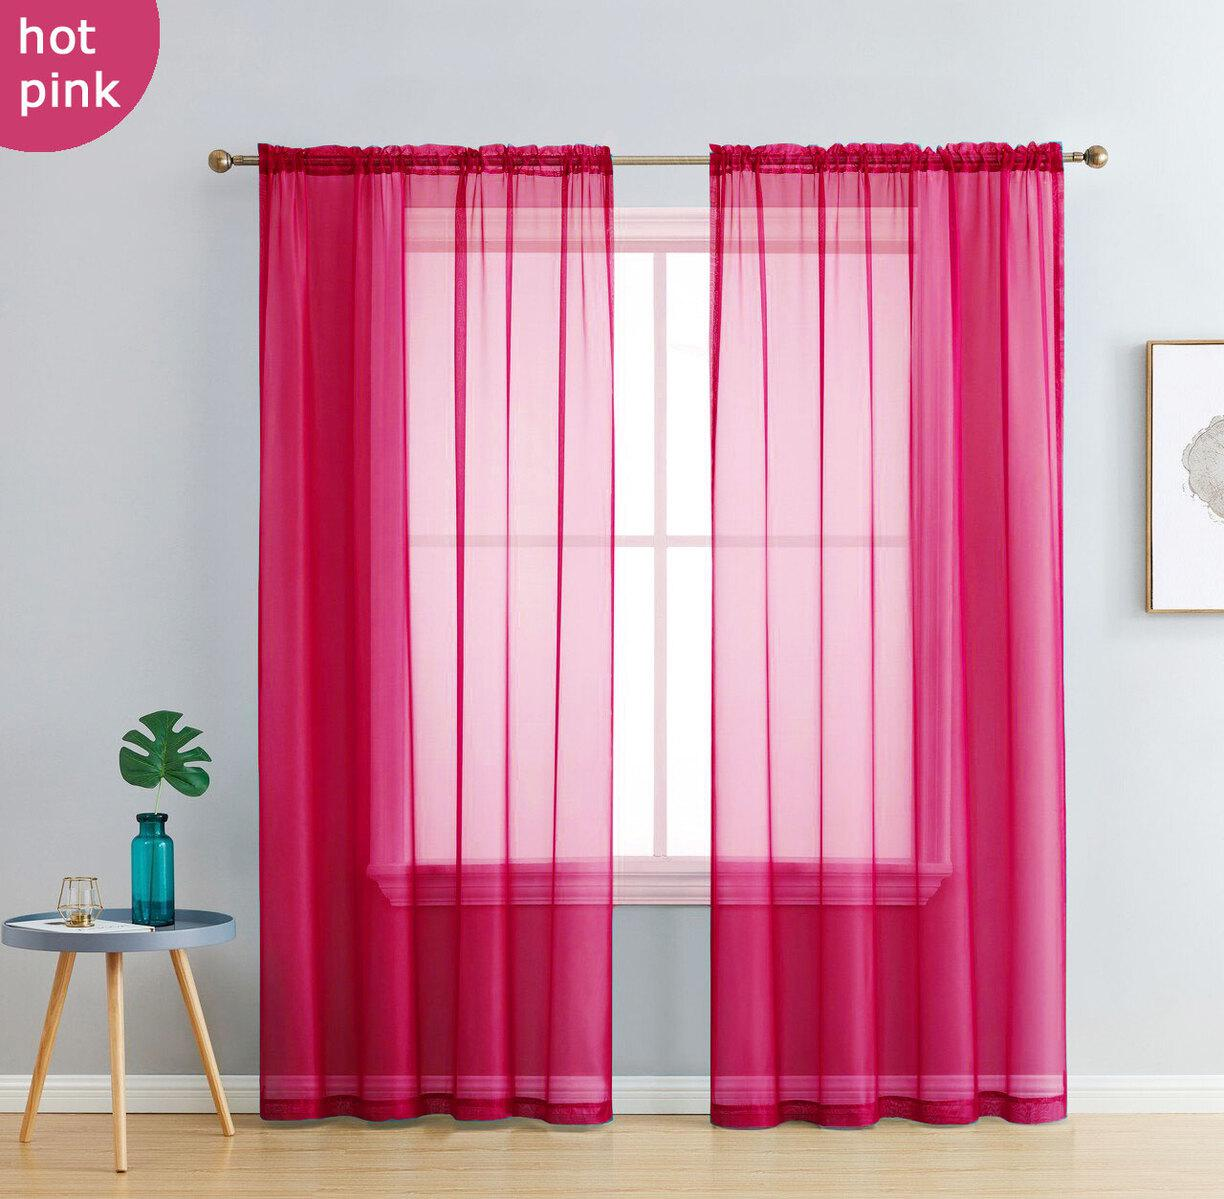 Pair Of Hot Pink Sheer Curtain 140x213cm Rod Pocket Voile Curtains Fuchsia Kogan Com